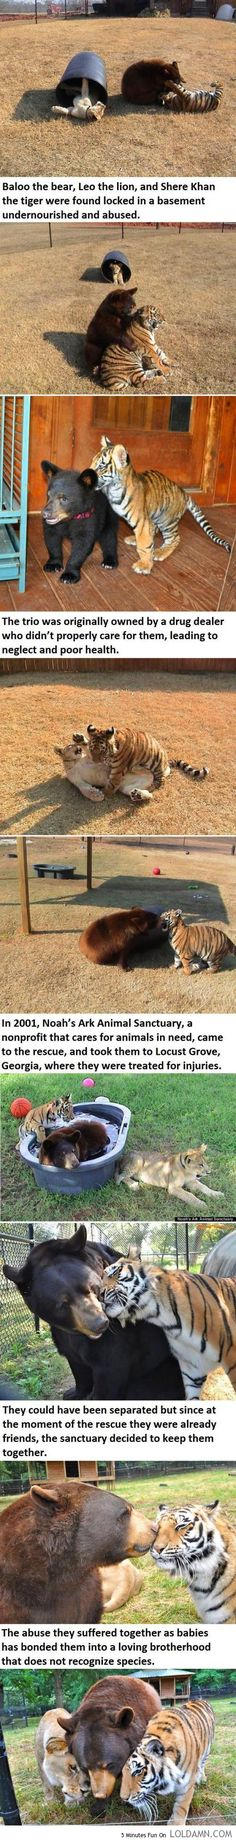 An Unusual Friendship Story About A Bear, A Lion And A Tiger. Thats how we do it were I come from #hometown !!!! #locustgrovega